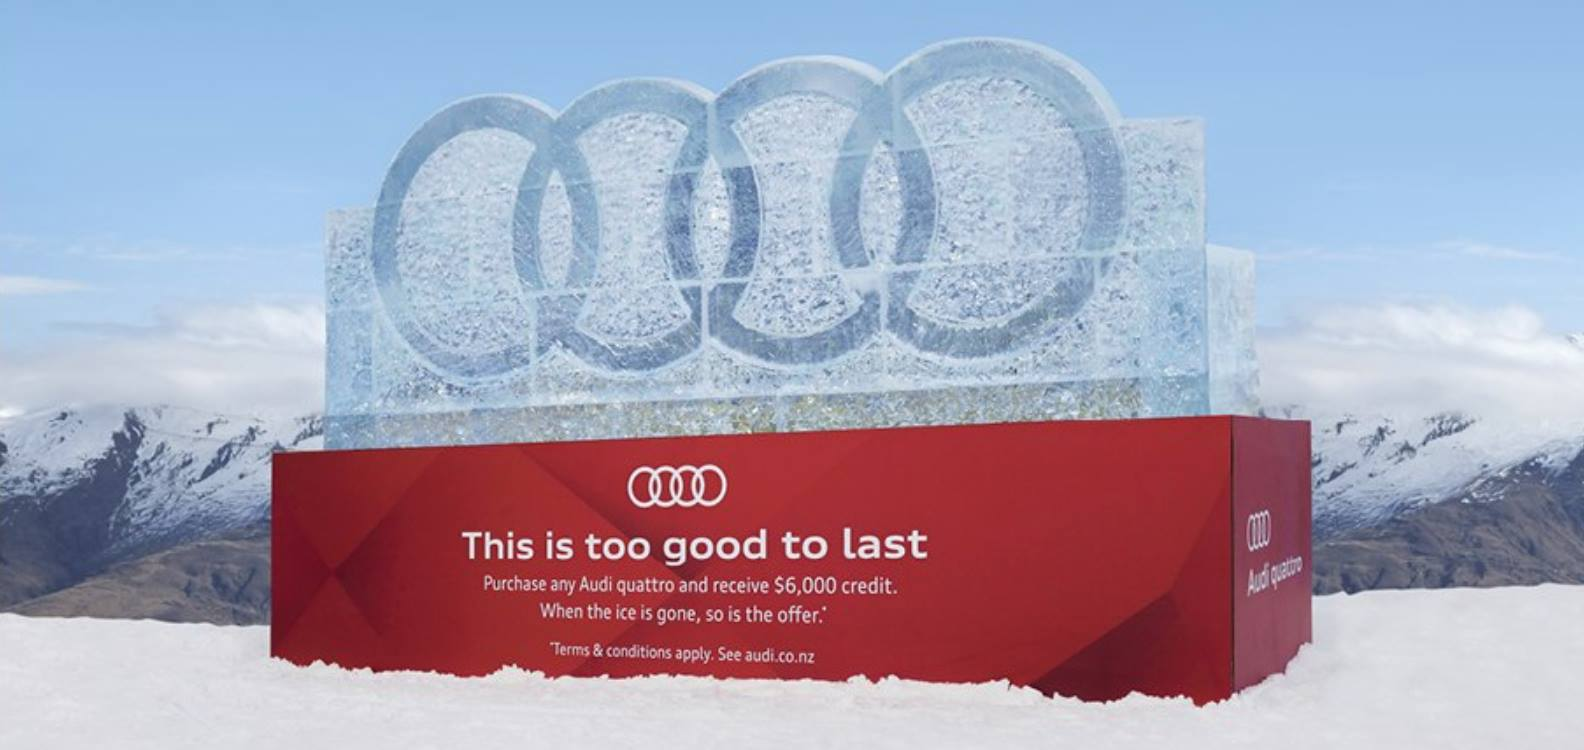 Ice Sculpture for Audi, The Melting Offer, Audi marketing campaign Winter 2018, multiple block sculp